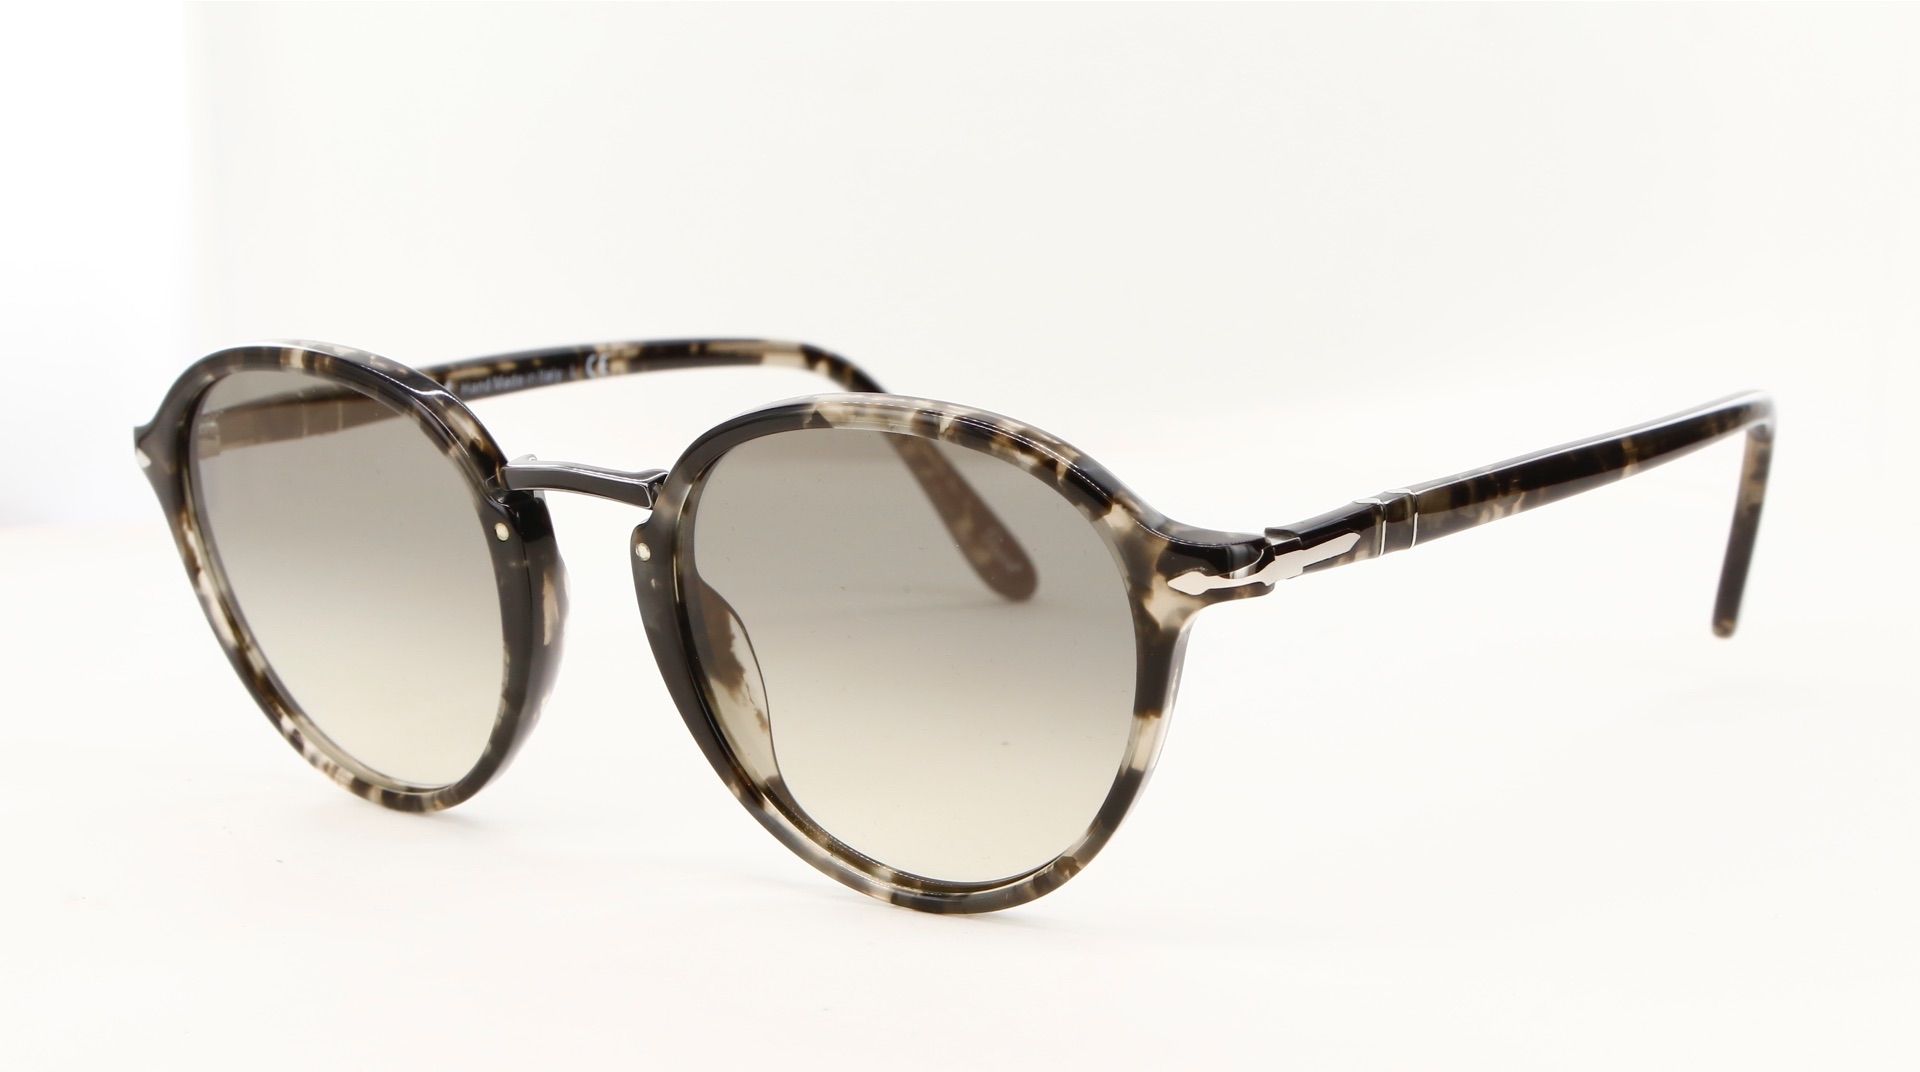 Persol - ref: 80846